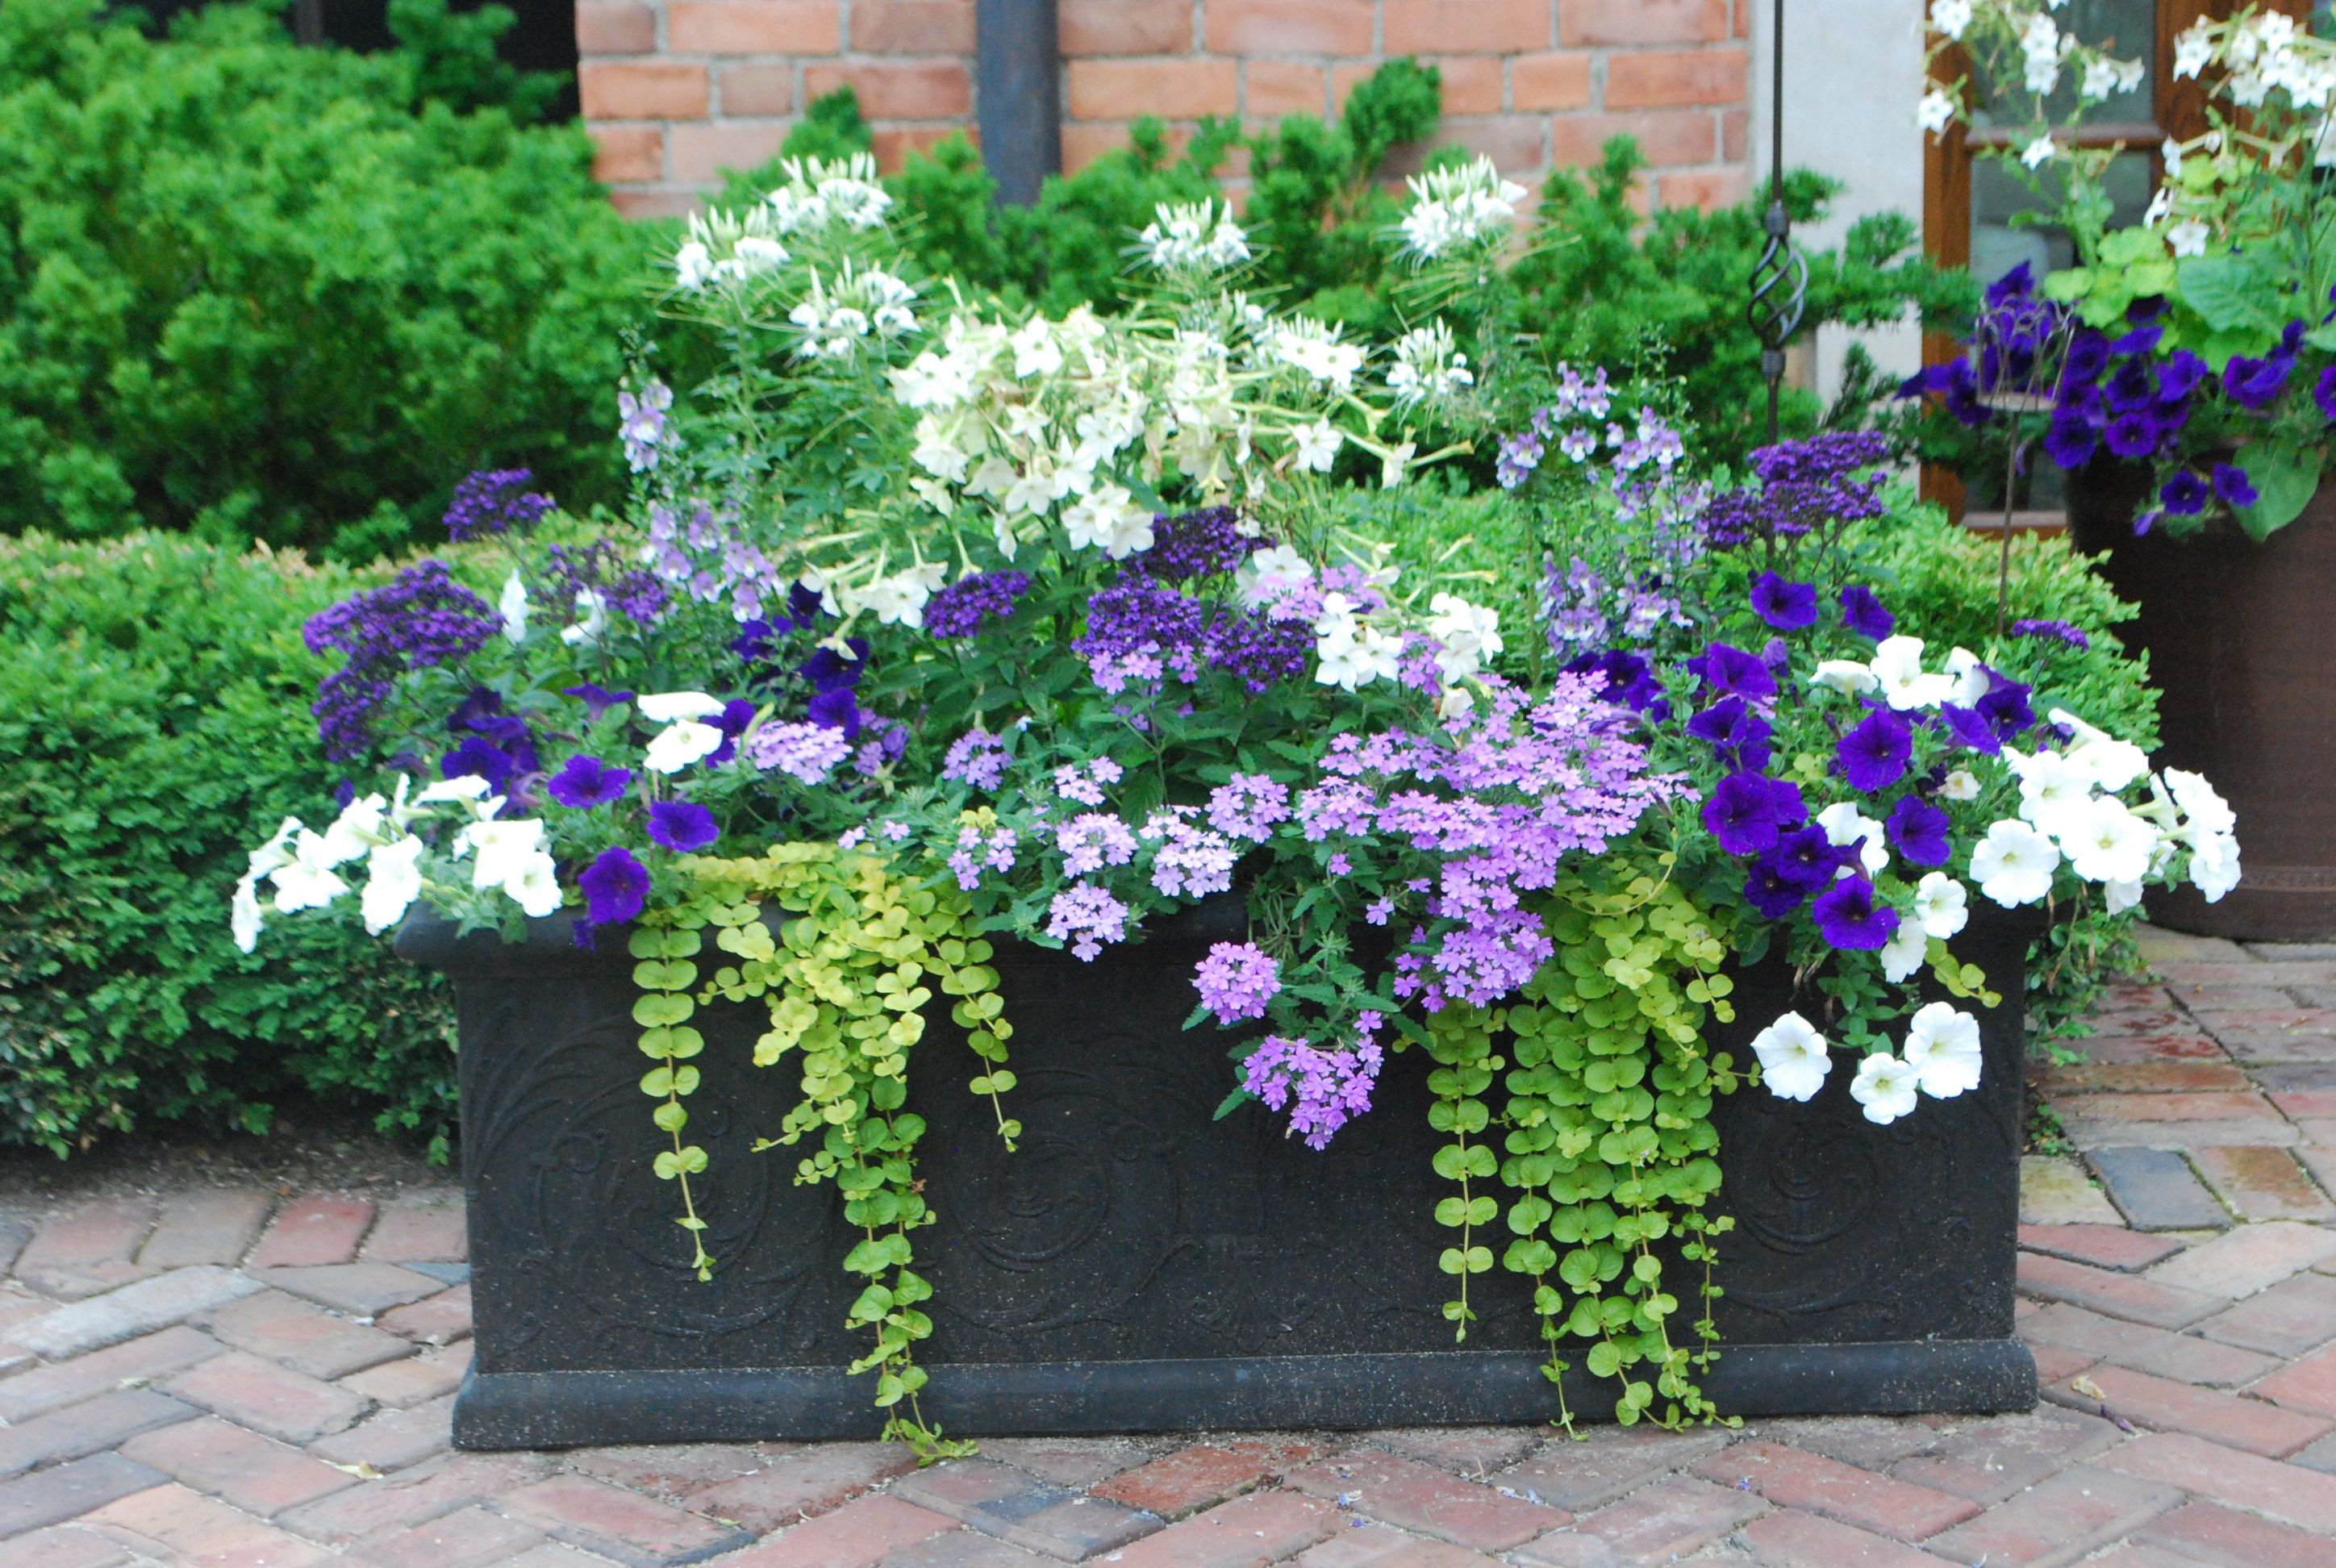 Do You Plant Flowers On Mother's Day? (Good Life Of Design